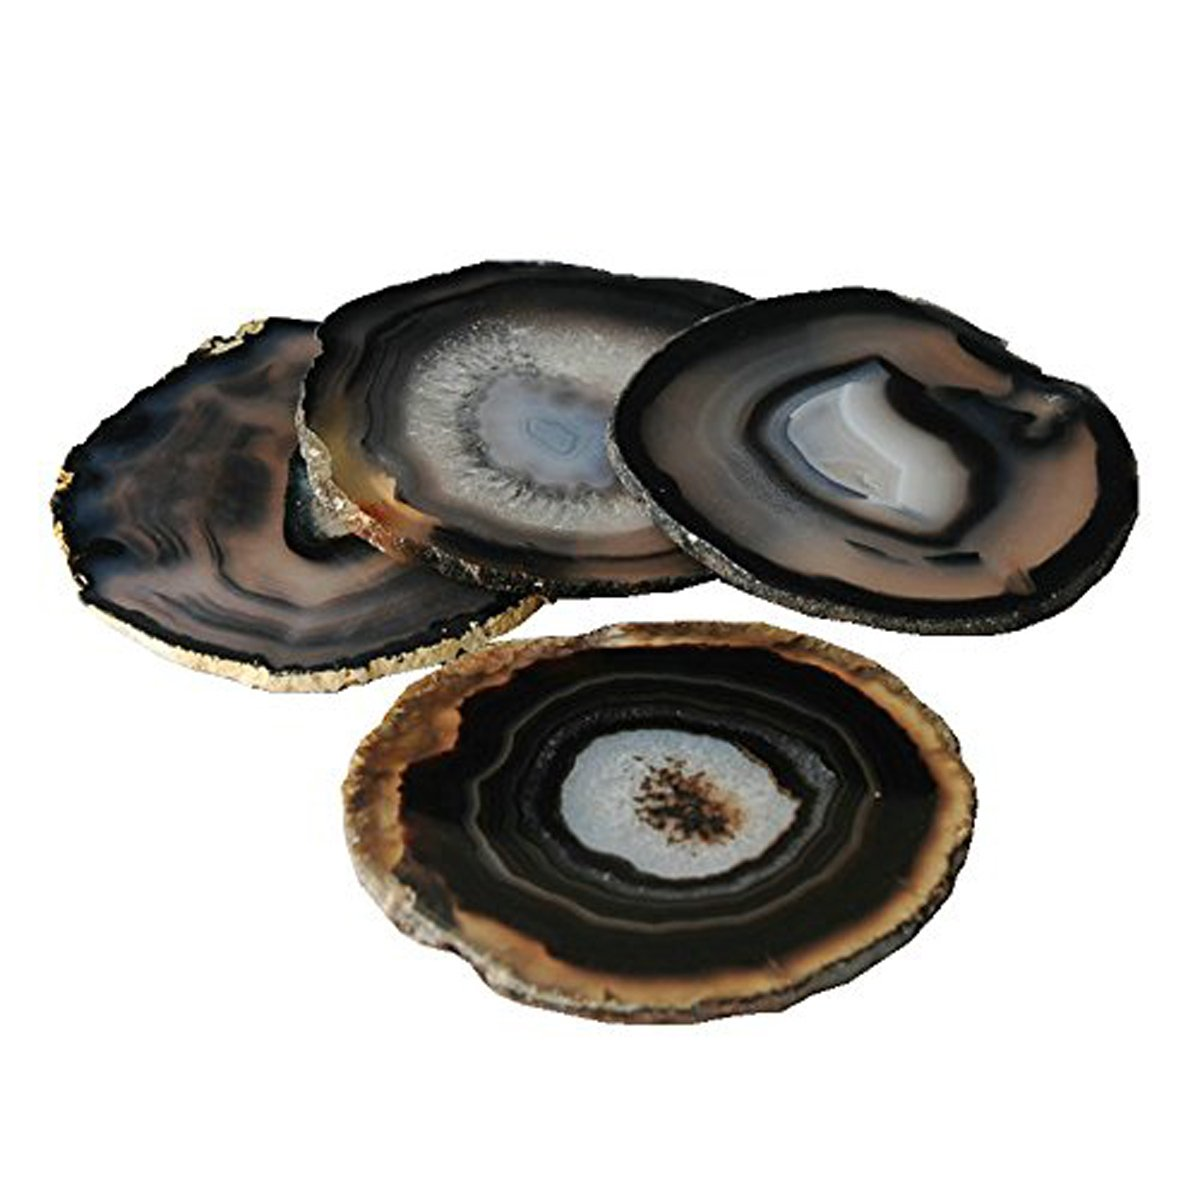 JIC Gem Set of 4 Black Dyed Brazilian Agate Coasters Rubber Bumpers (Quality 1) 3.5 Inches to 4 Inches